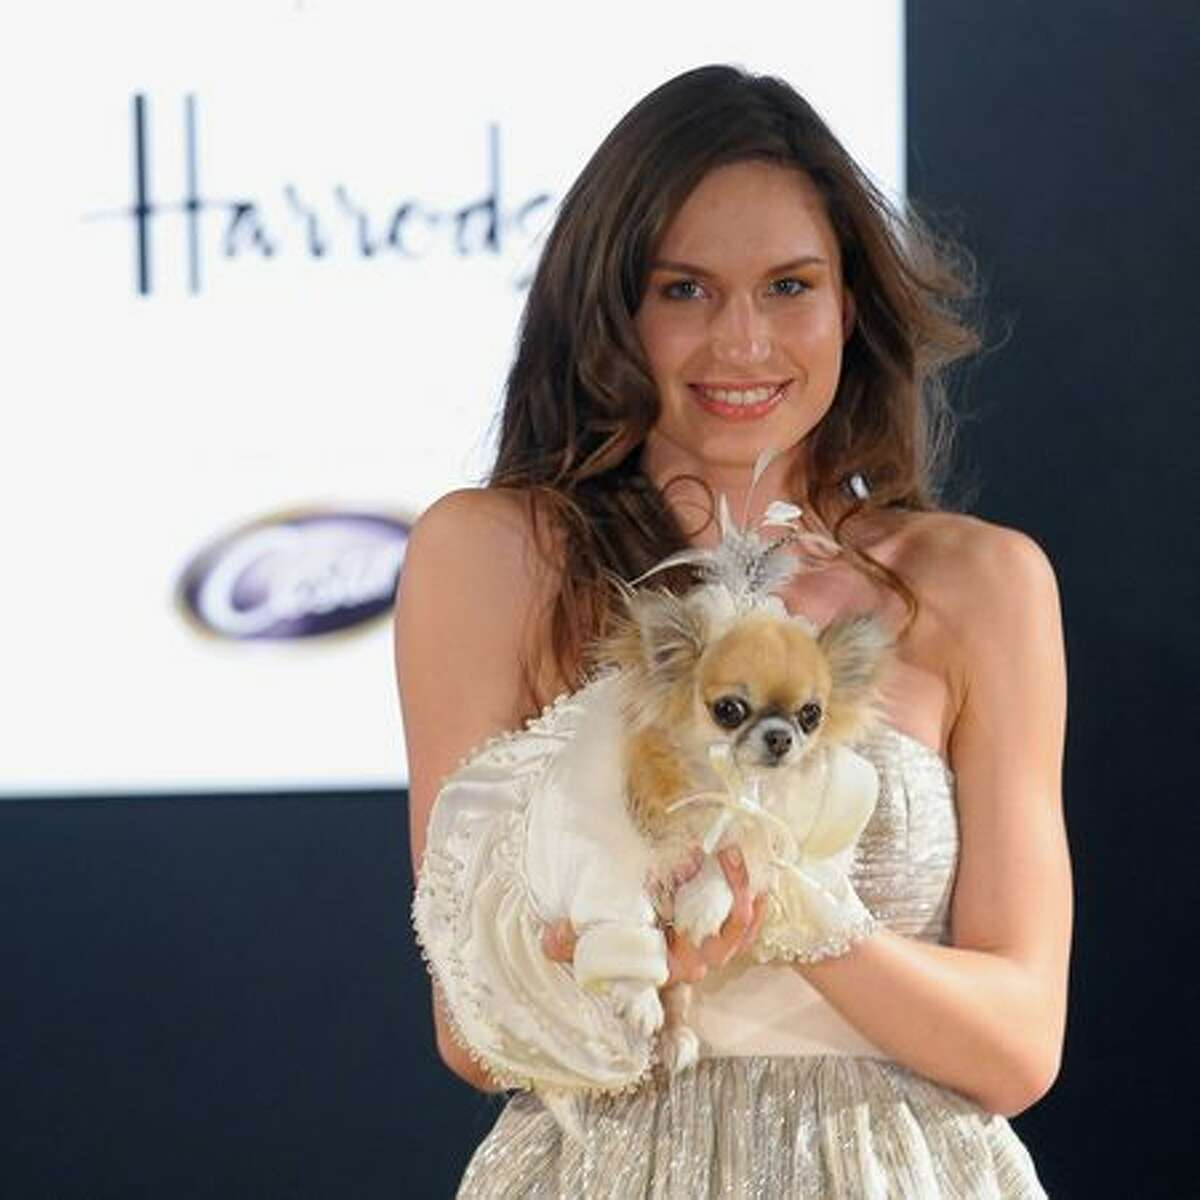 A model walks down the catwalk with a dog wearing an outfit from the movie 'The Wizard of Oz' during the annual 'Pet-a-Porter' pet fashion show at Harrods in London, England.